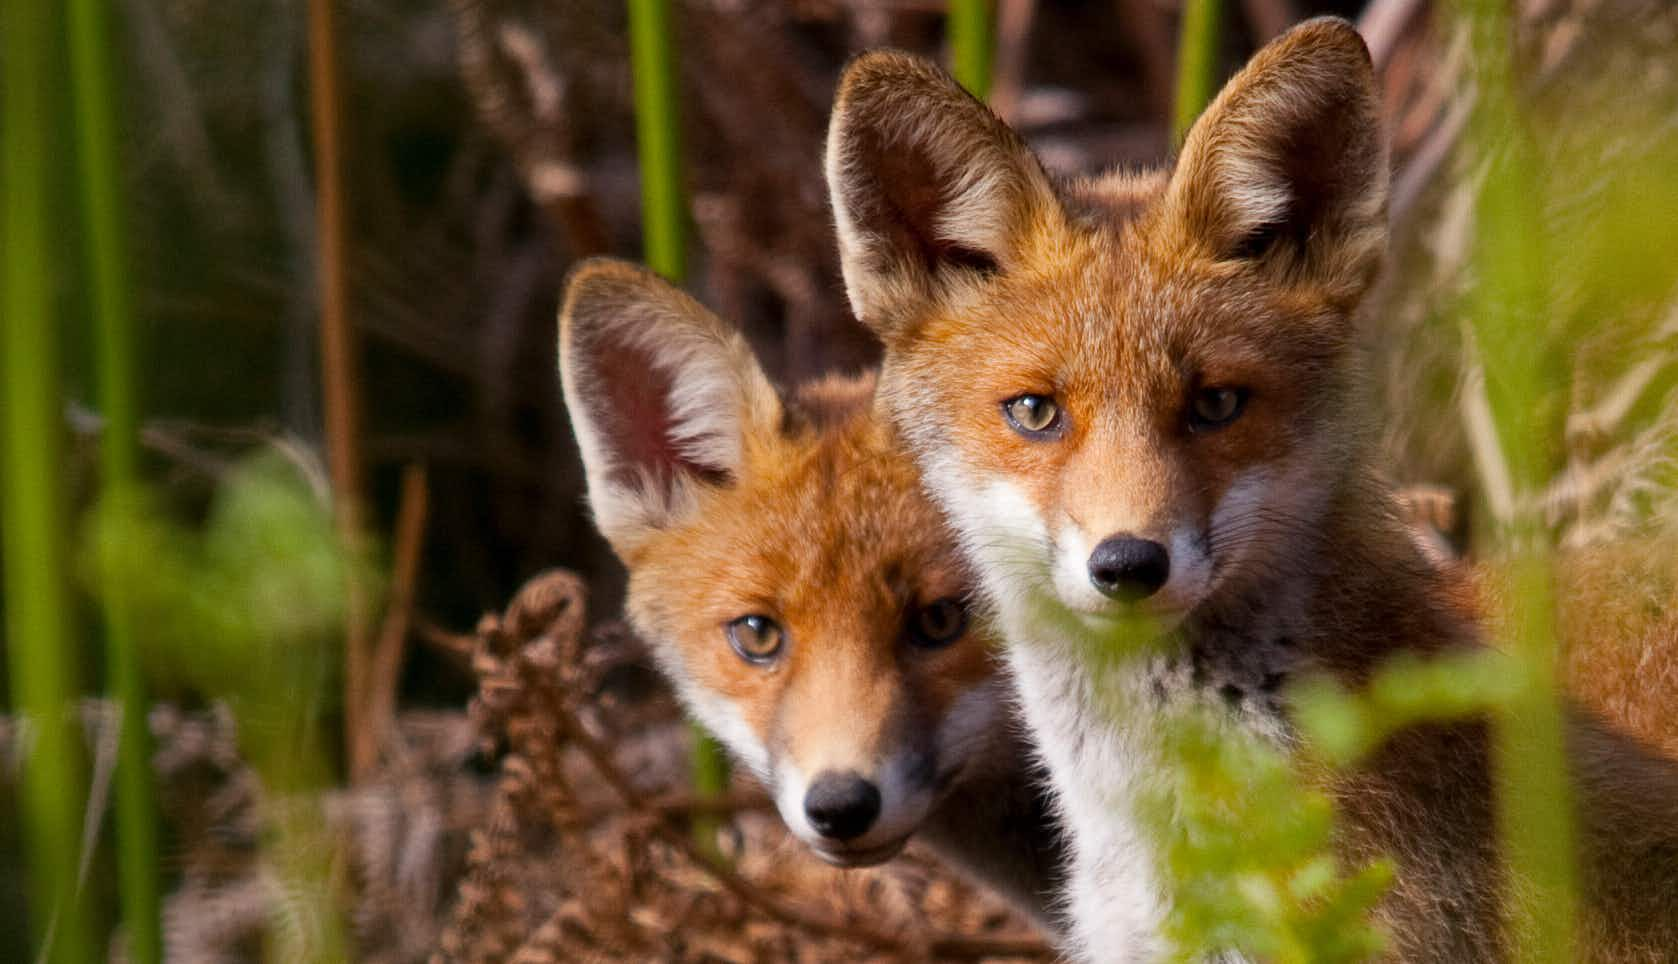 London Fox Fortnight gives a fascinating glimpse of English wildlife in urban environments